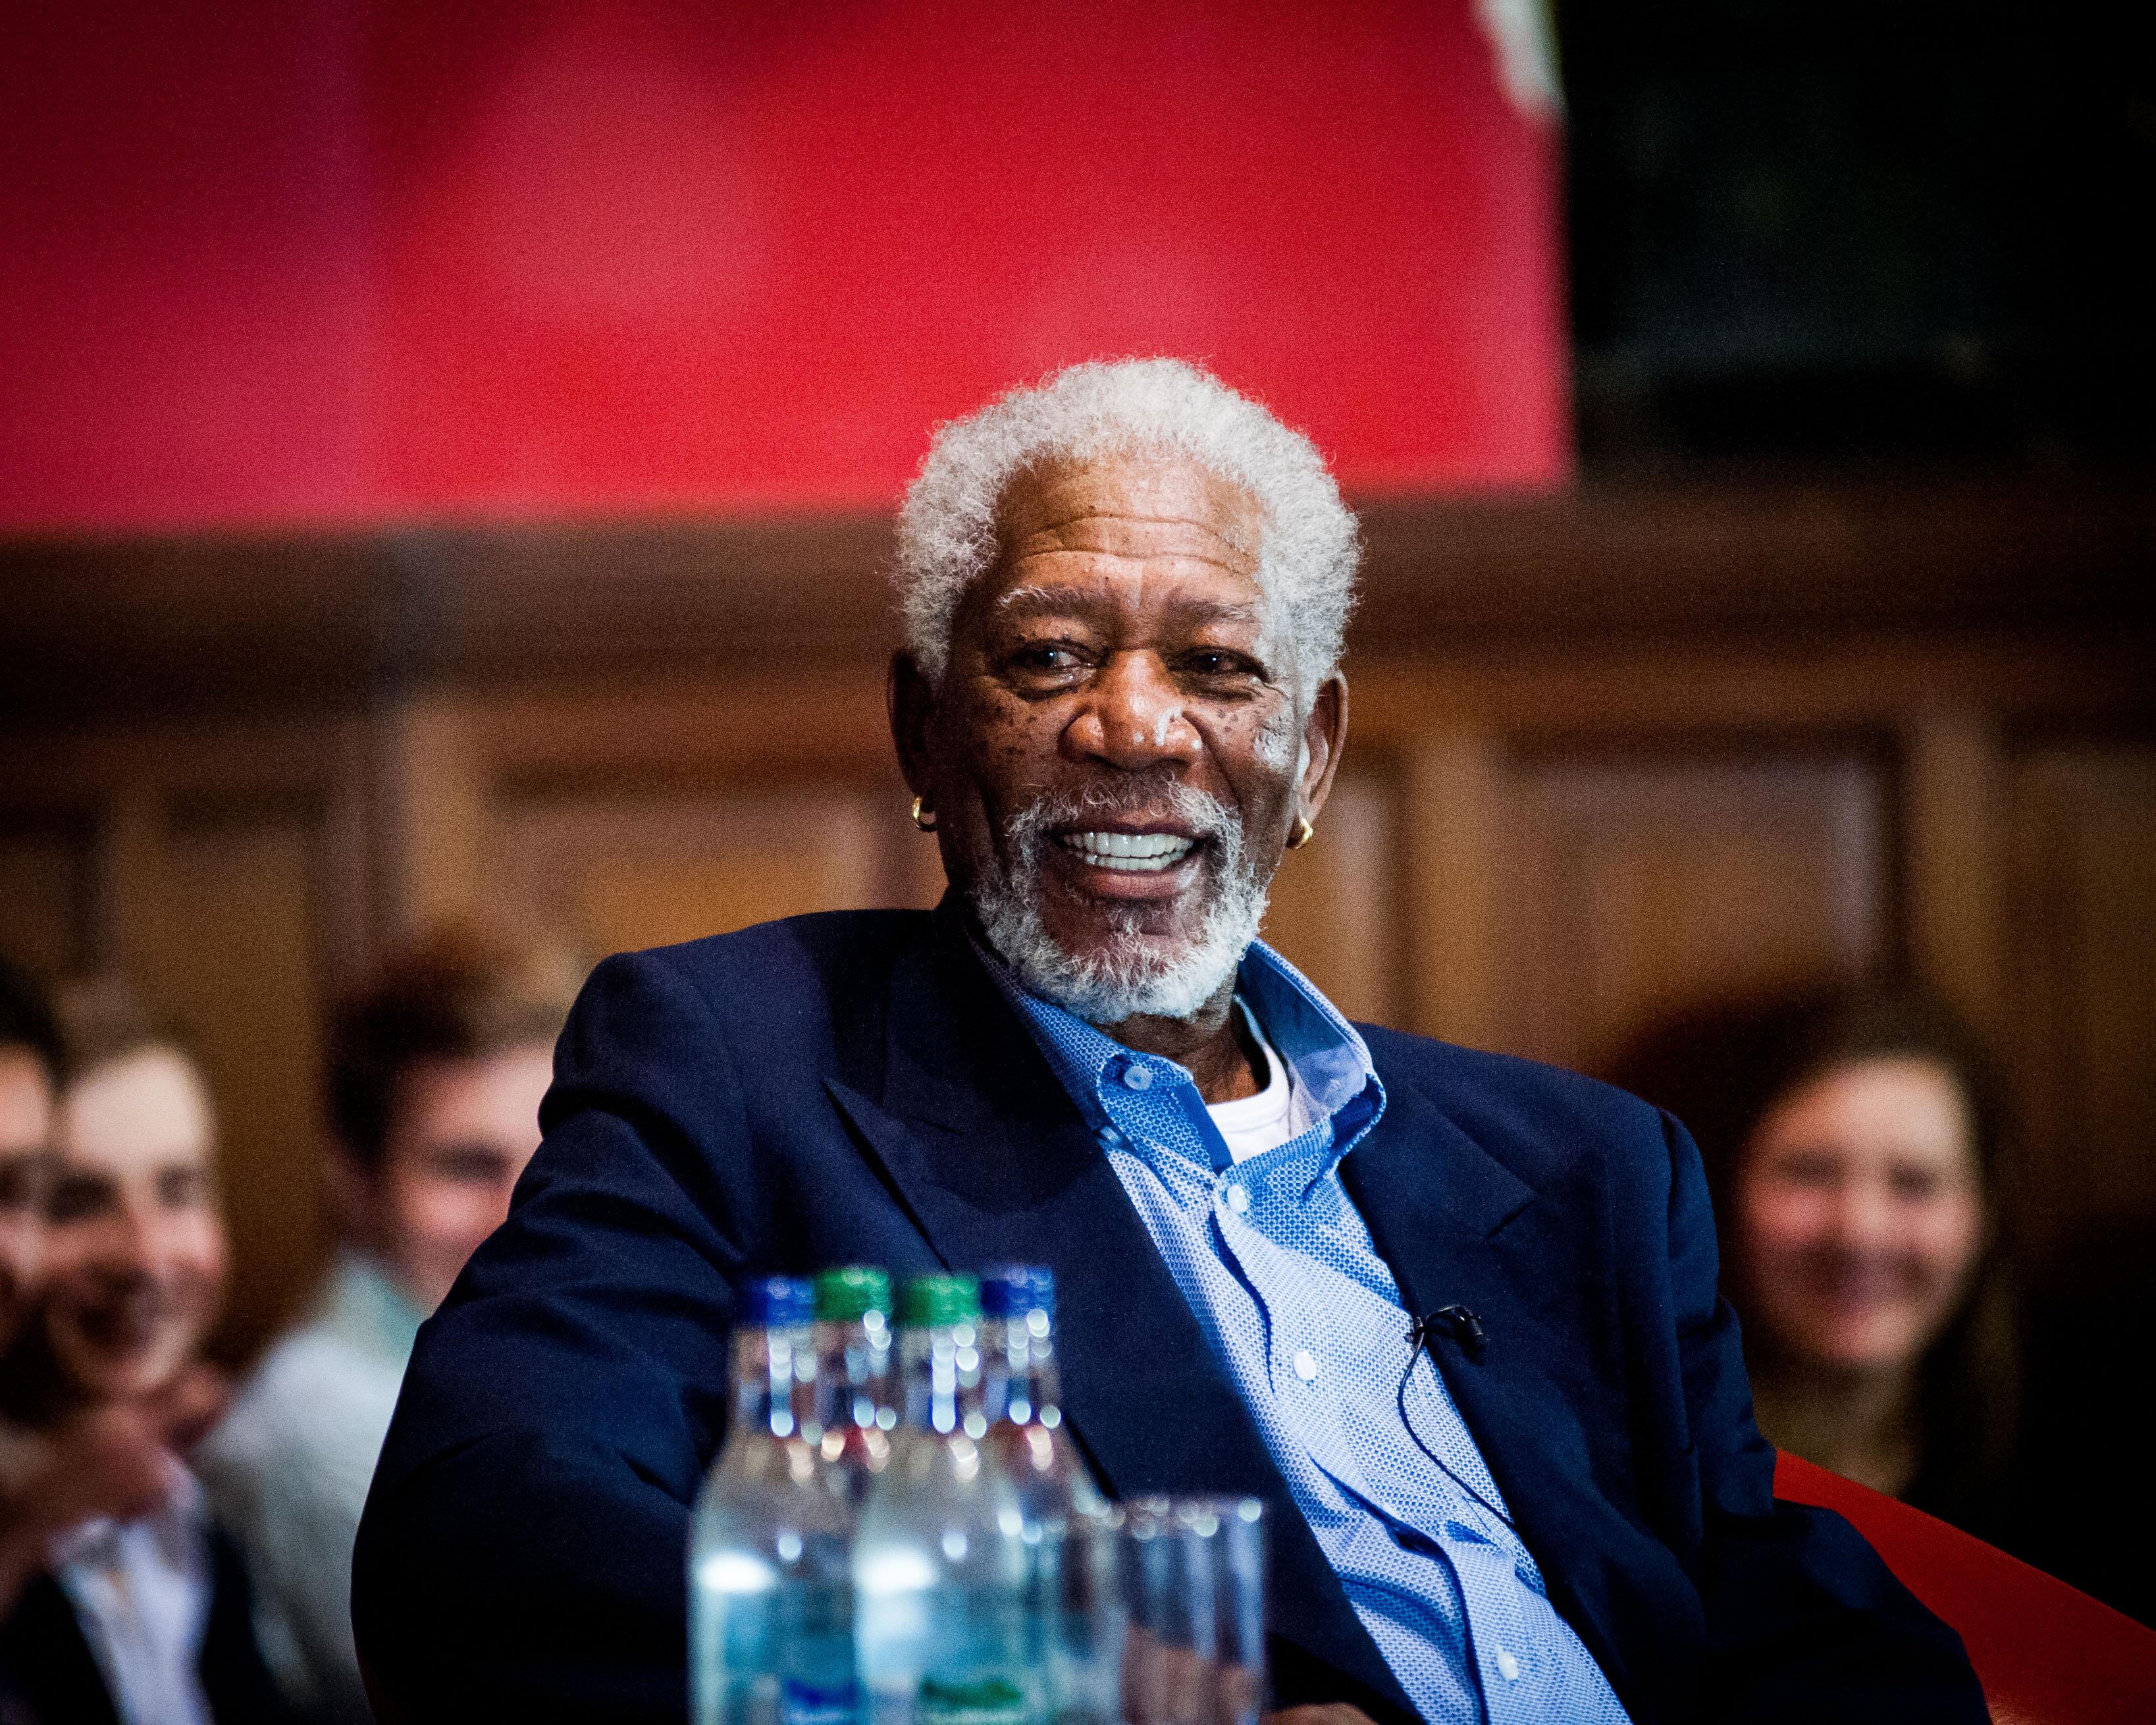 Oxford, U.K., November 11, 2014--Morgan Freeman speaks at inaugural SAG Foundation Conversations at Oxford (Photo credit: Roger Askew/Oxford University)